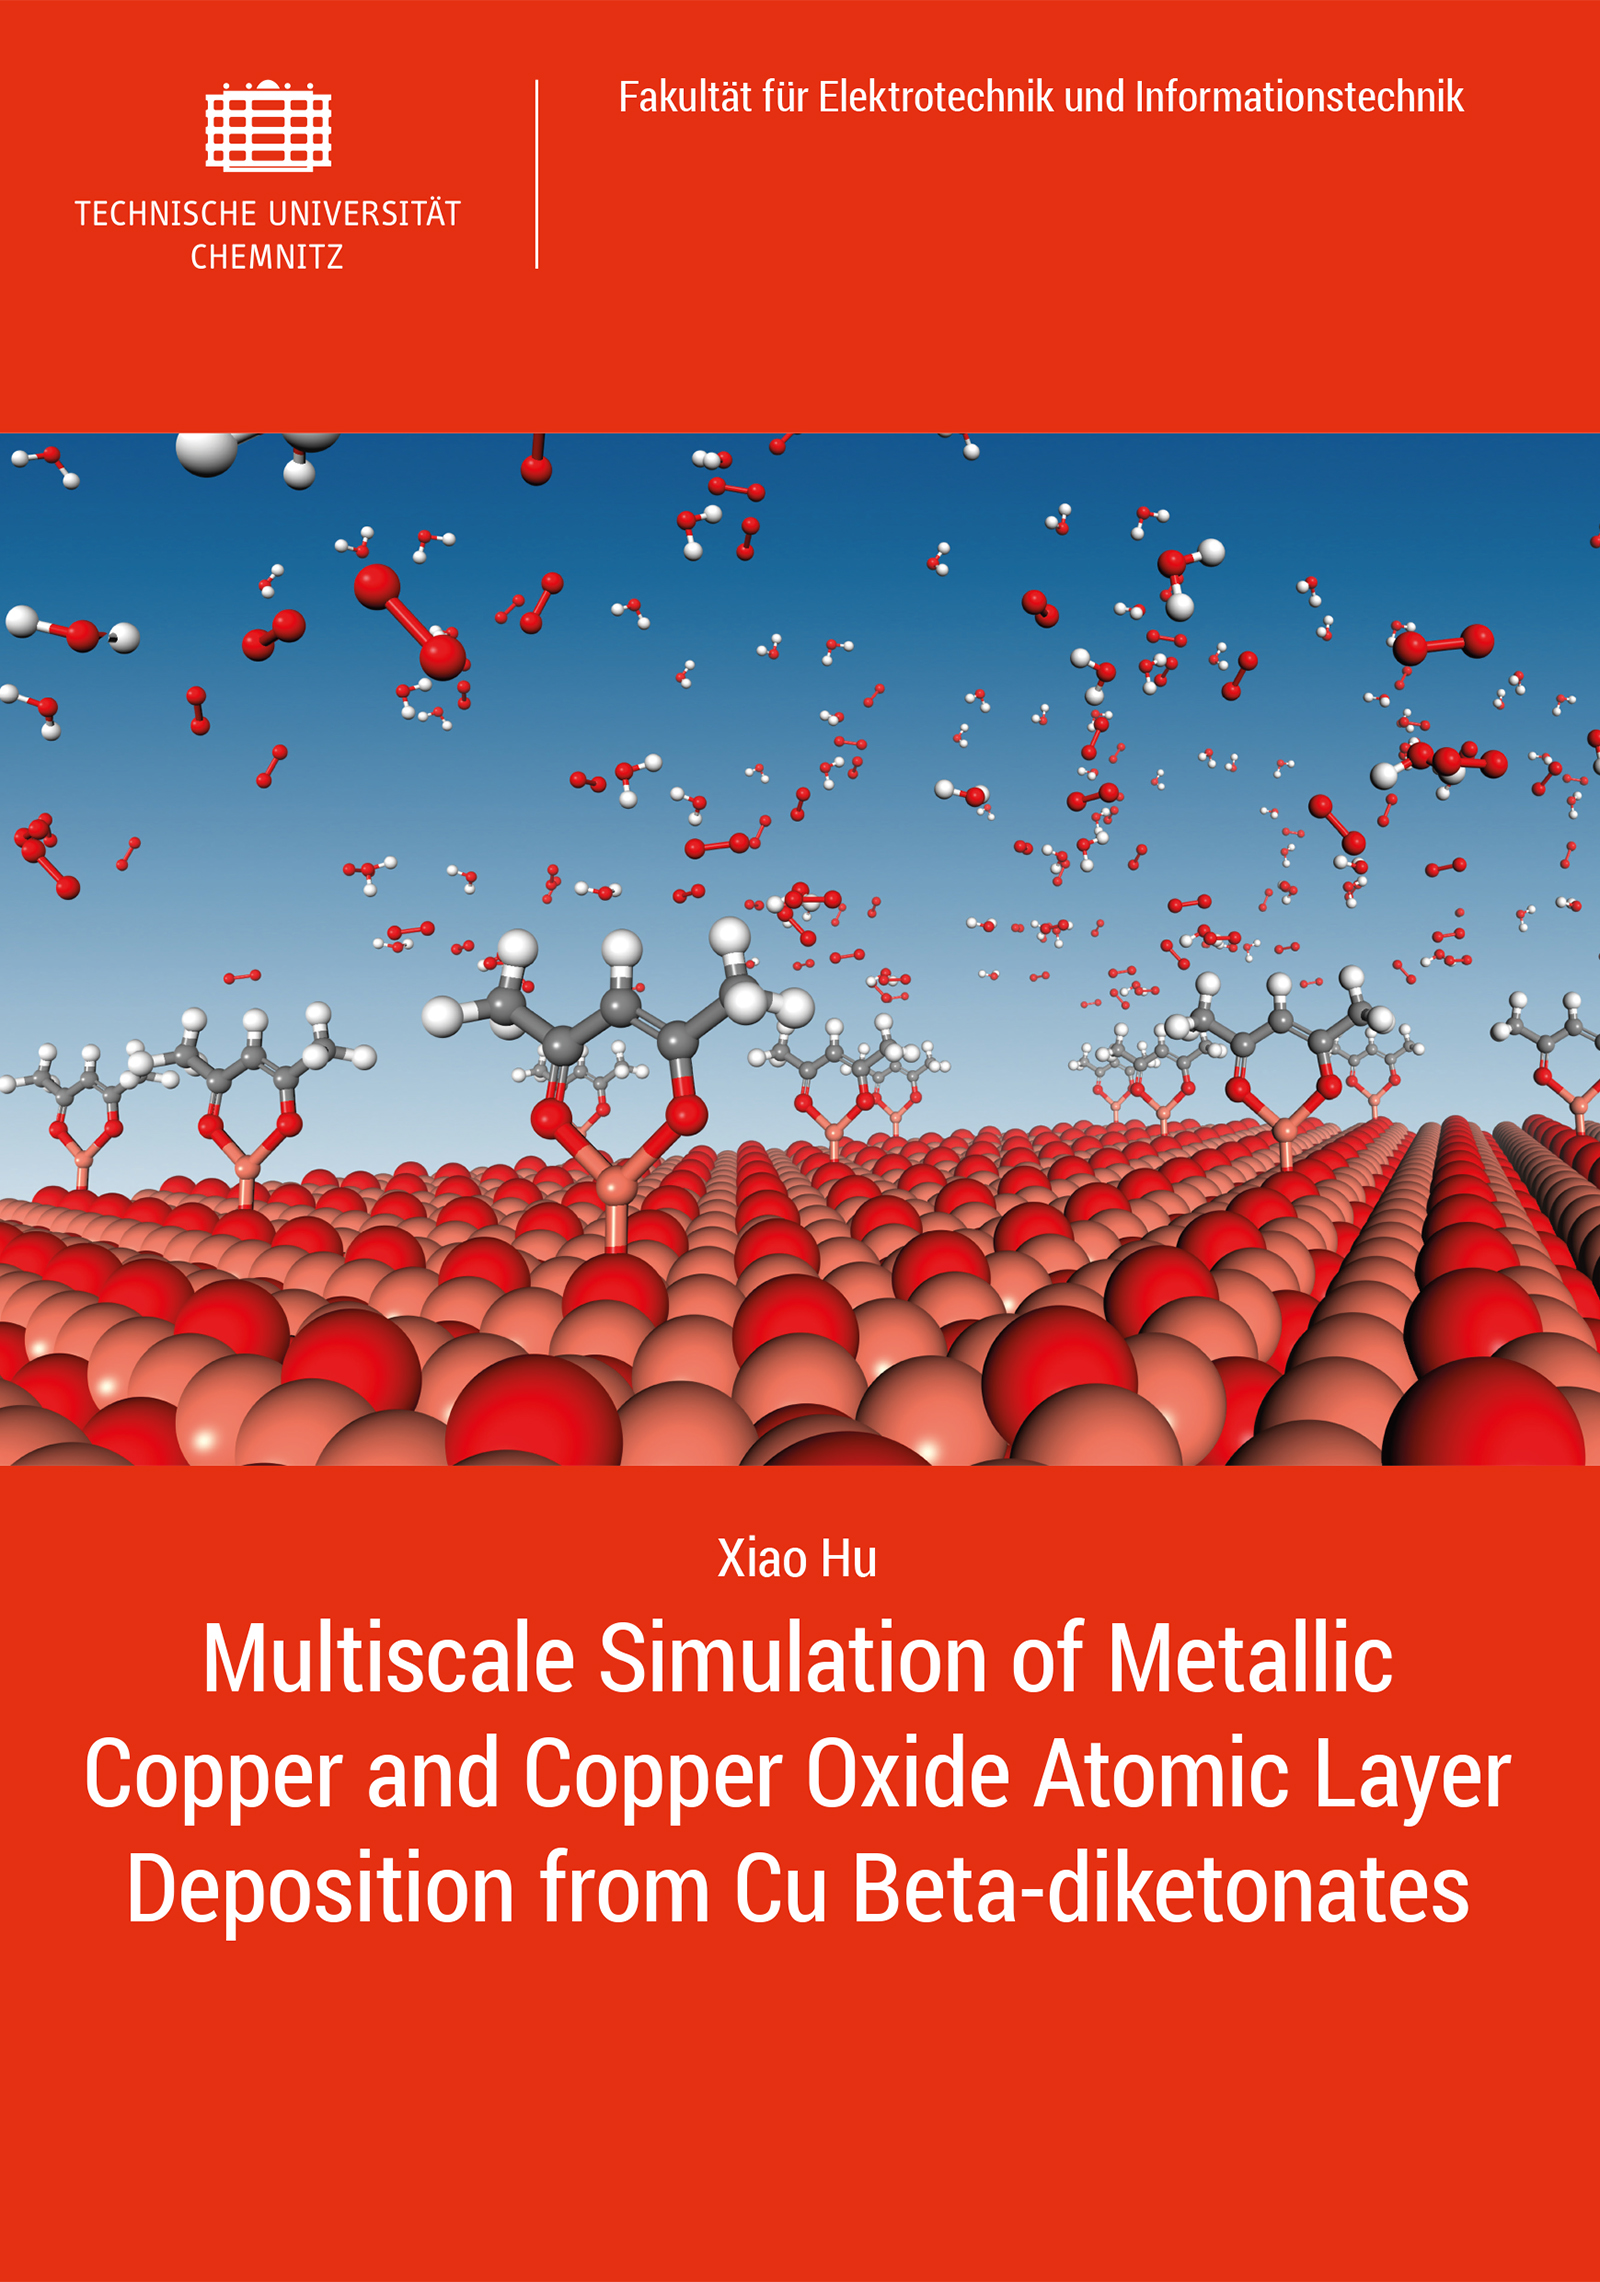 Cover: Multiscale Simulation of Metallic Copper and Copper Oxide Atomic Layer Deposition from Cu Beta-diketonates